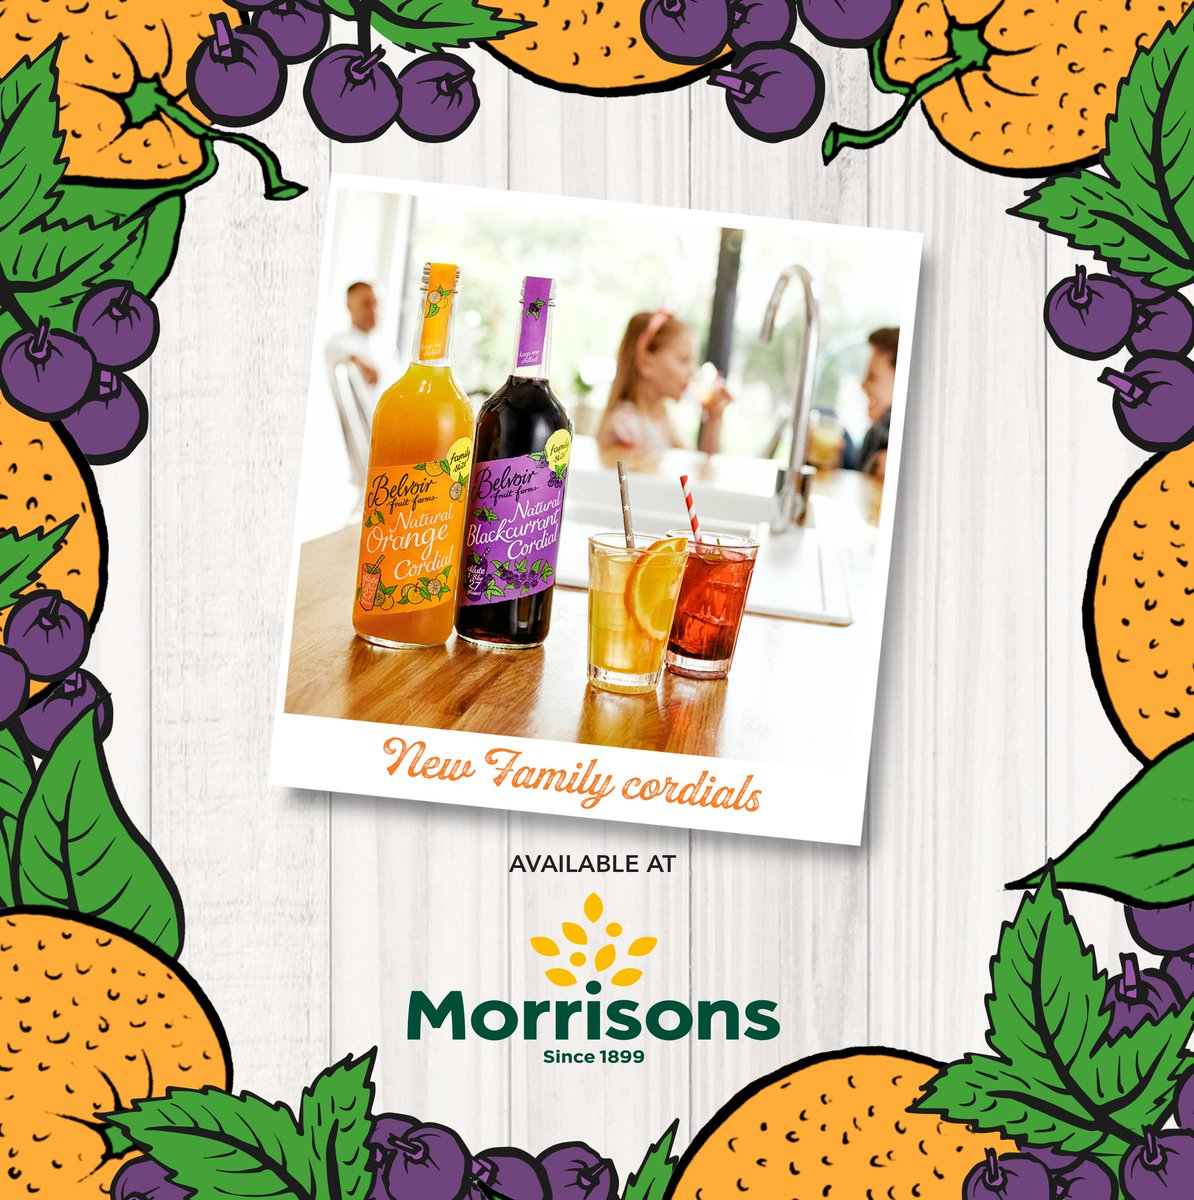 Writing your shopping list for this weekends food shop? Have you spied our NEW Family Size traditional Orange and Blackcurrant Cordials? They are available in @Morrisons now! https://t.co/T3fd9IeZHm